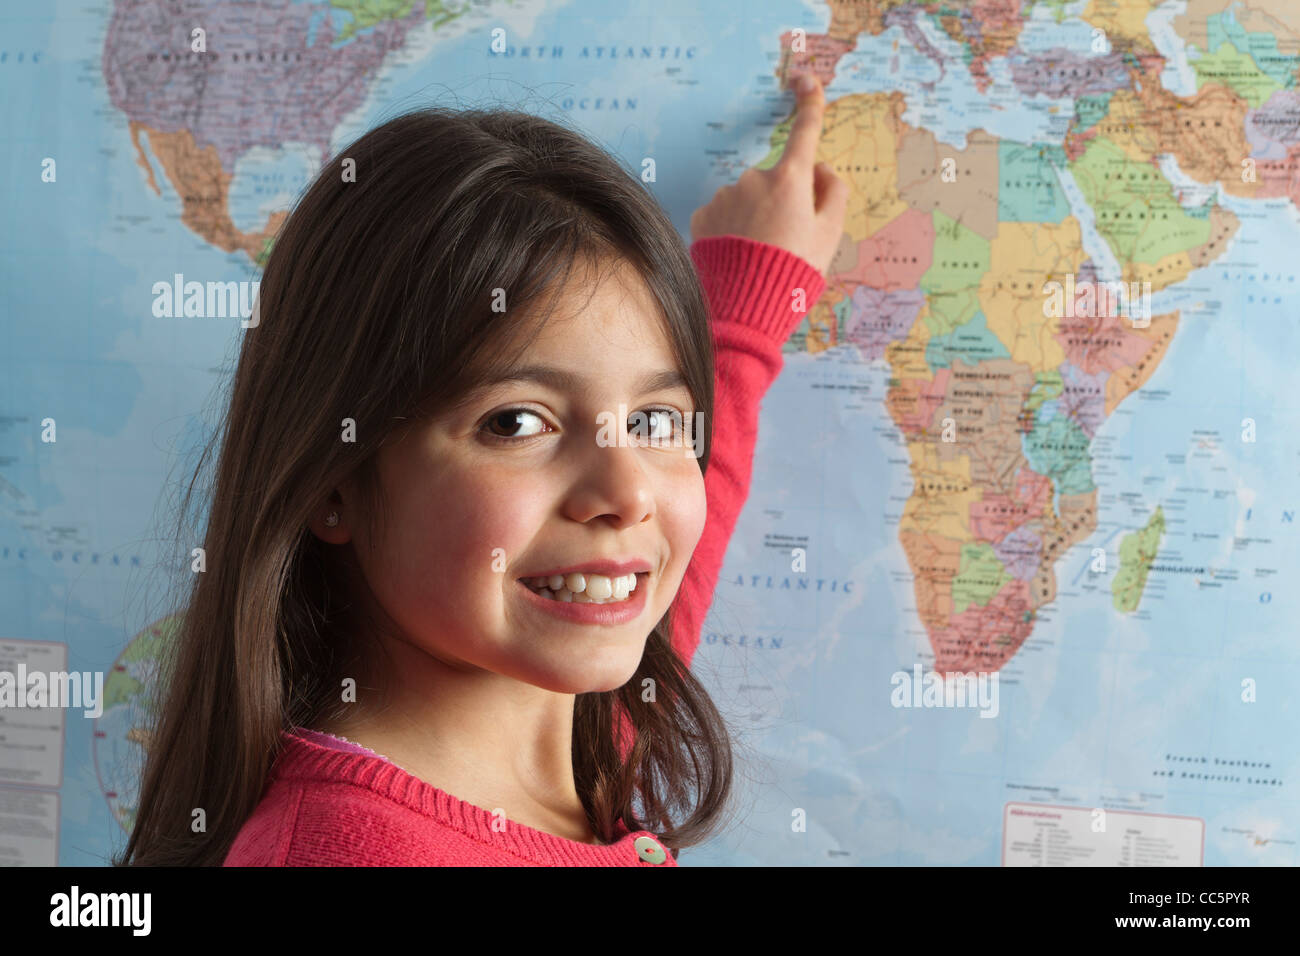 Young girl pointing to different countries on the world map Stock Photo